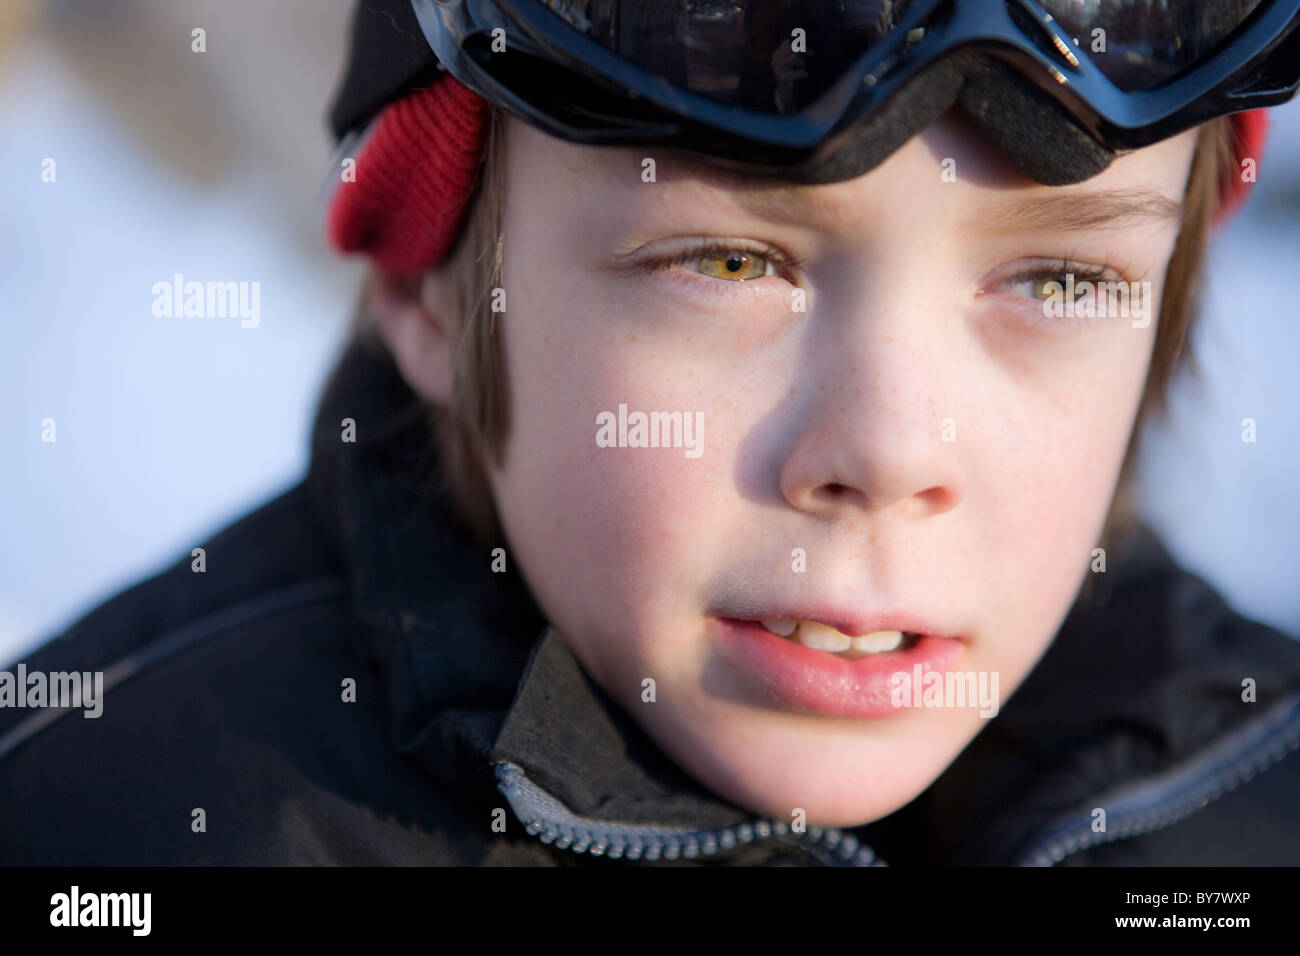 Boy dressed for skiing with anxious expression on his face. - Stock Image